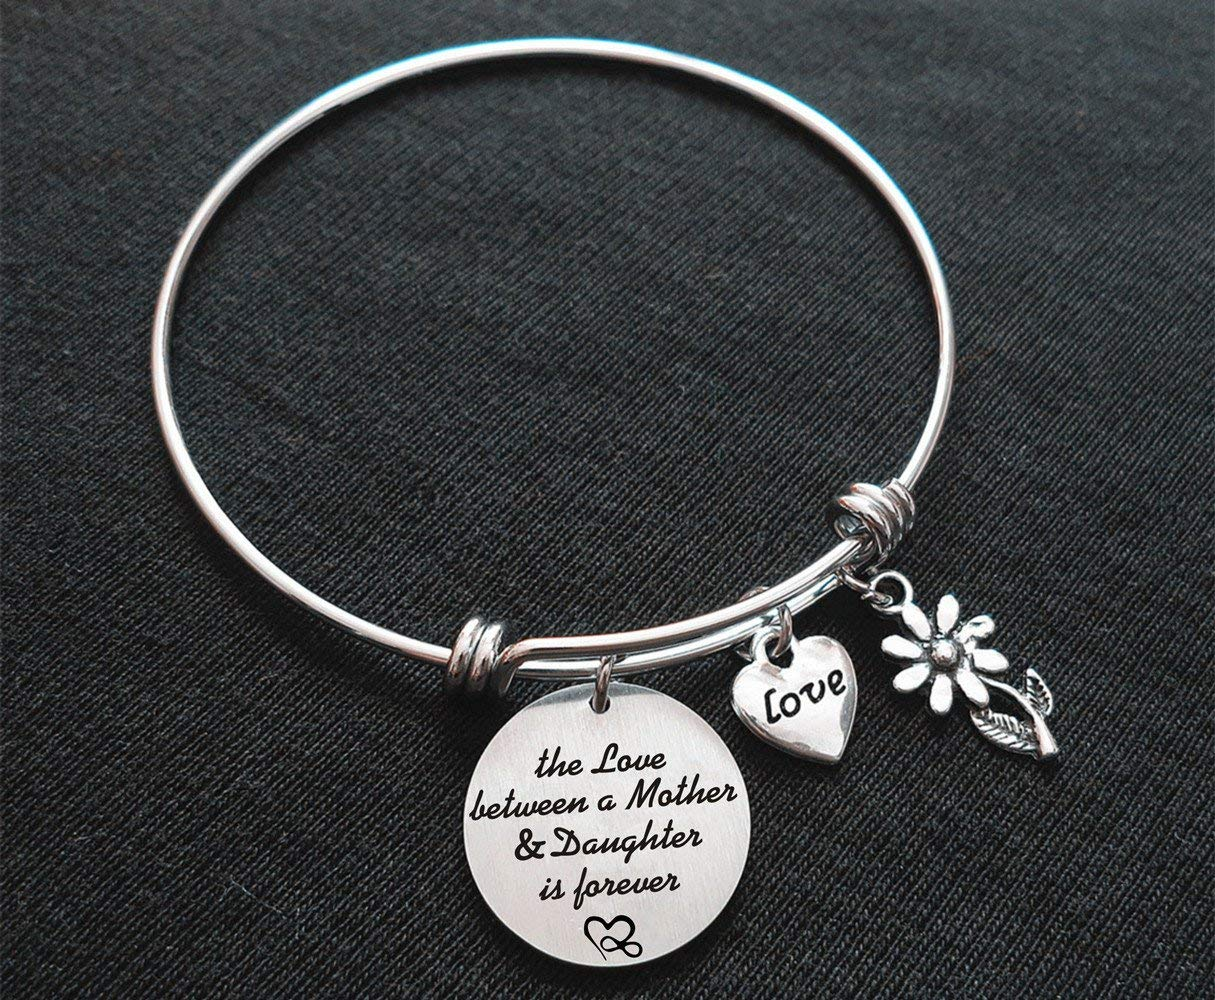 Mom Bangle Bracelet The Love Between Mother and Daughter Is Forever Mom Gifts From Daughter,Mother's Day Gifts,Christmas Gifts for mom